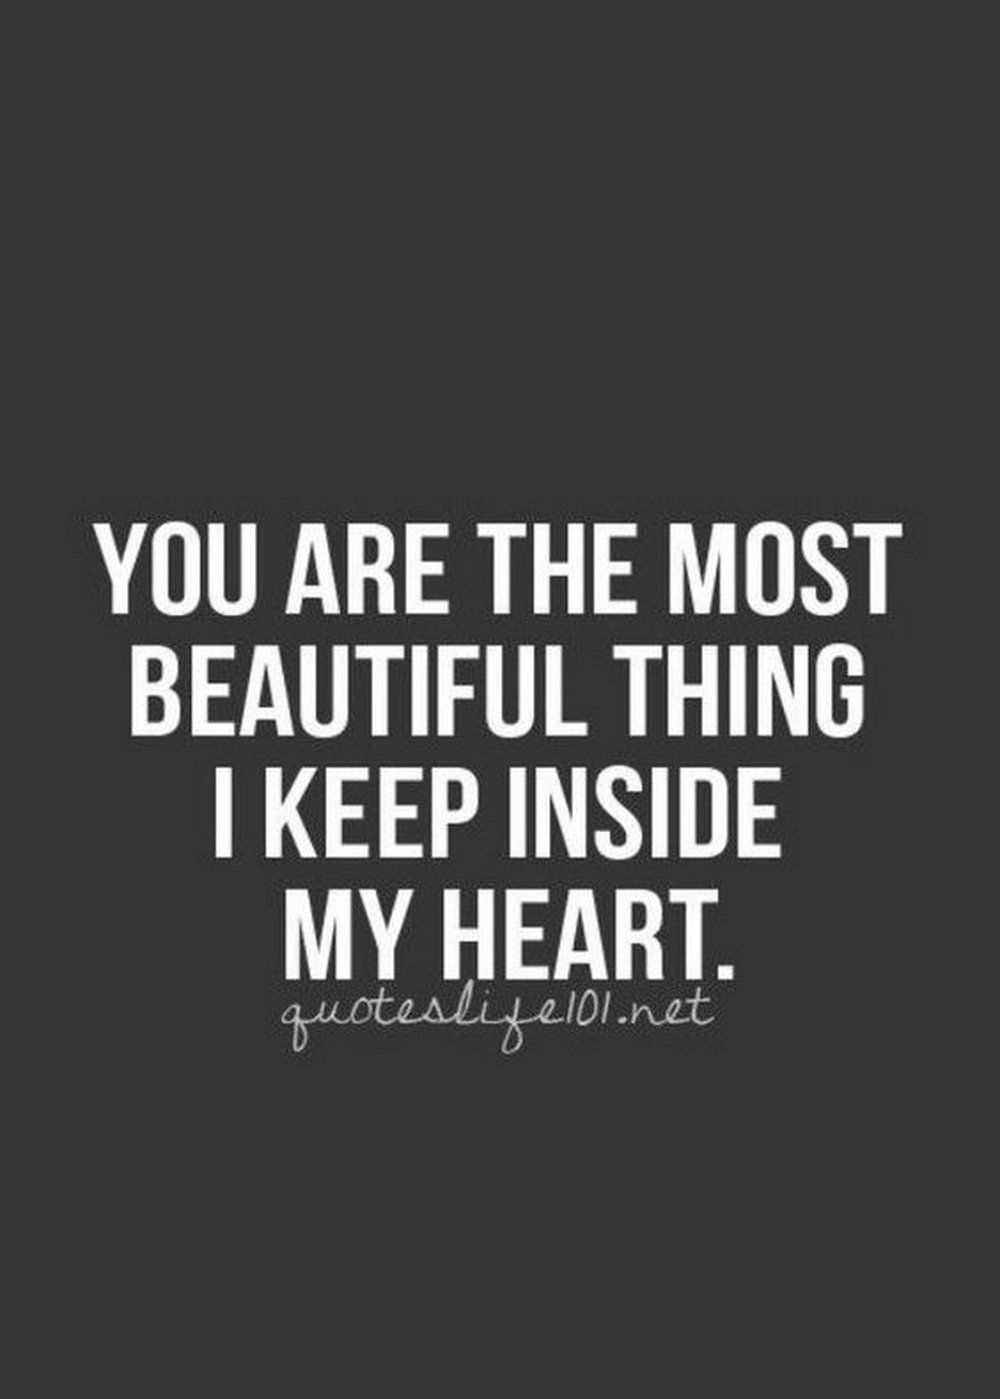 flirting quotes about beauty images free printable 2017